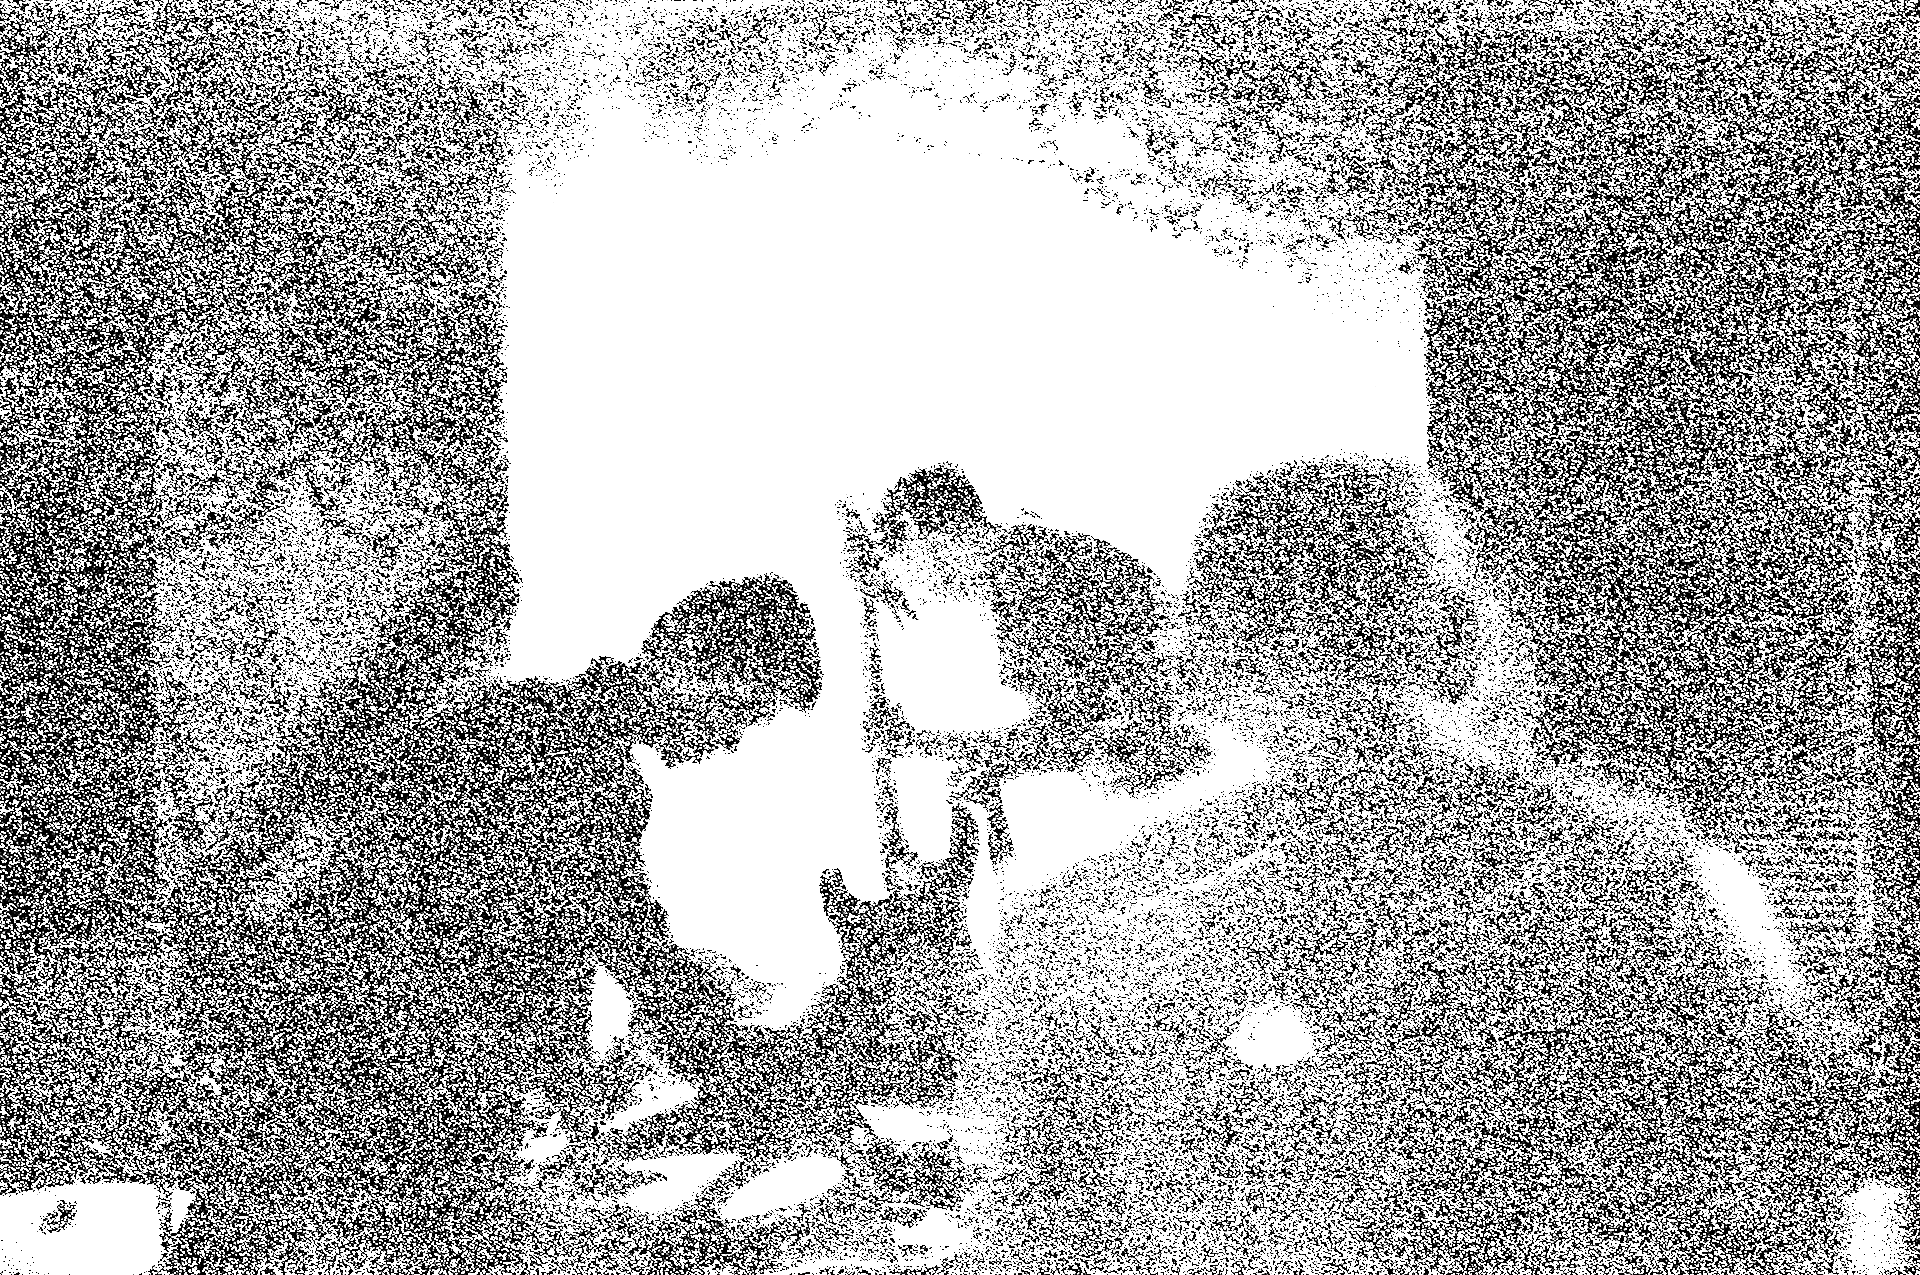 01-04_2017_019.png